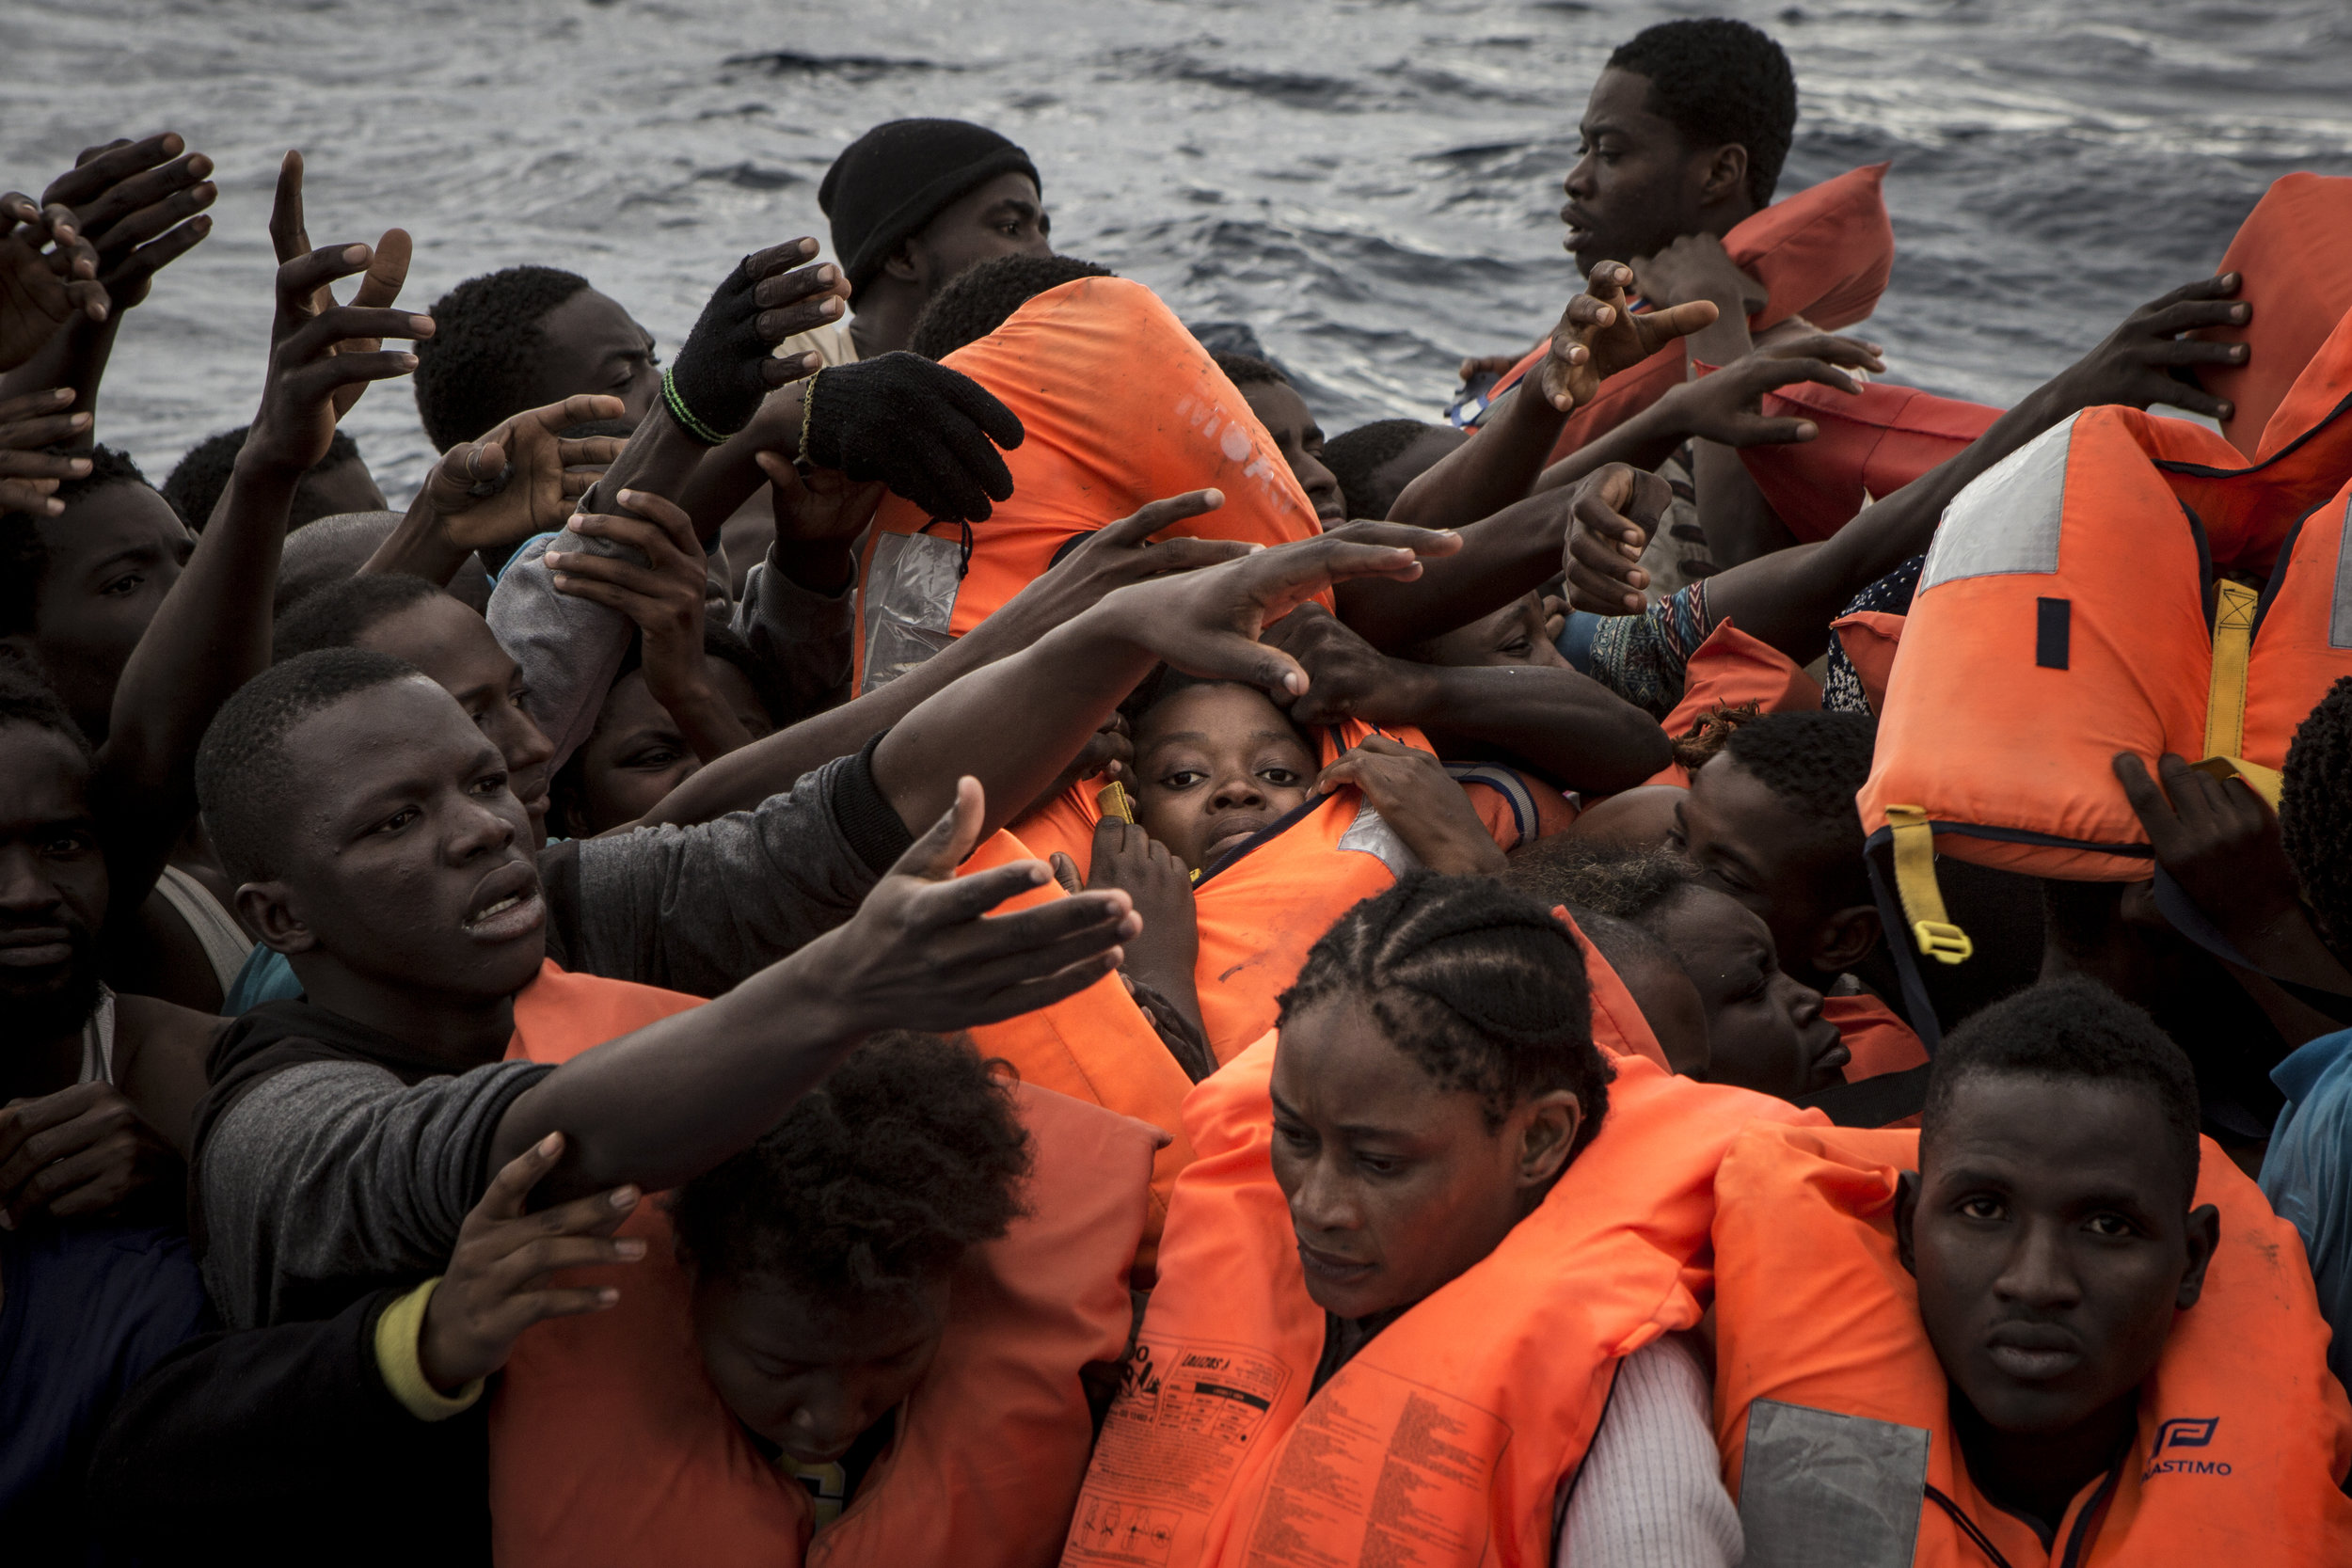 Rubber boat full of migrants as life jackets are being distributed by the MOAS crew. As they often don't have life jackets and do not know how to swim, the first priority if making sure everybody is given a floatation device.